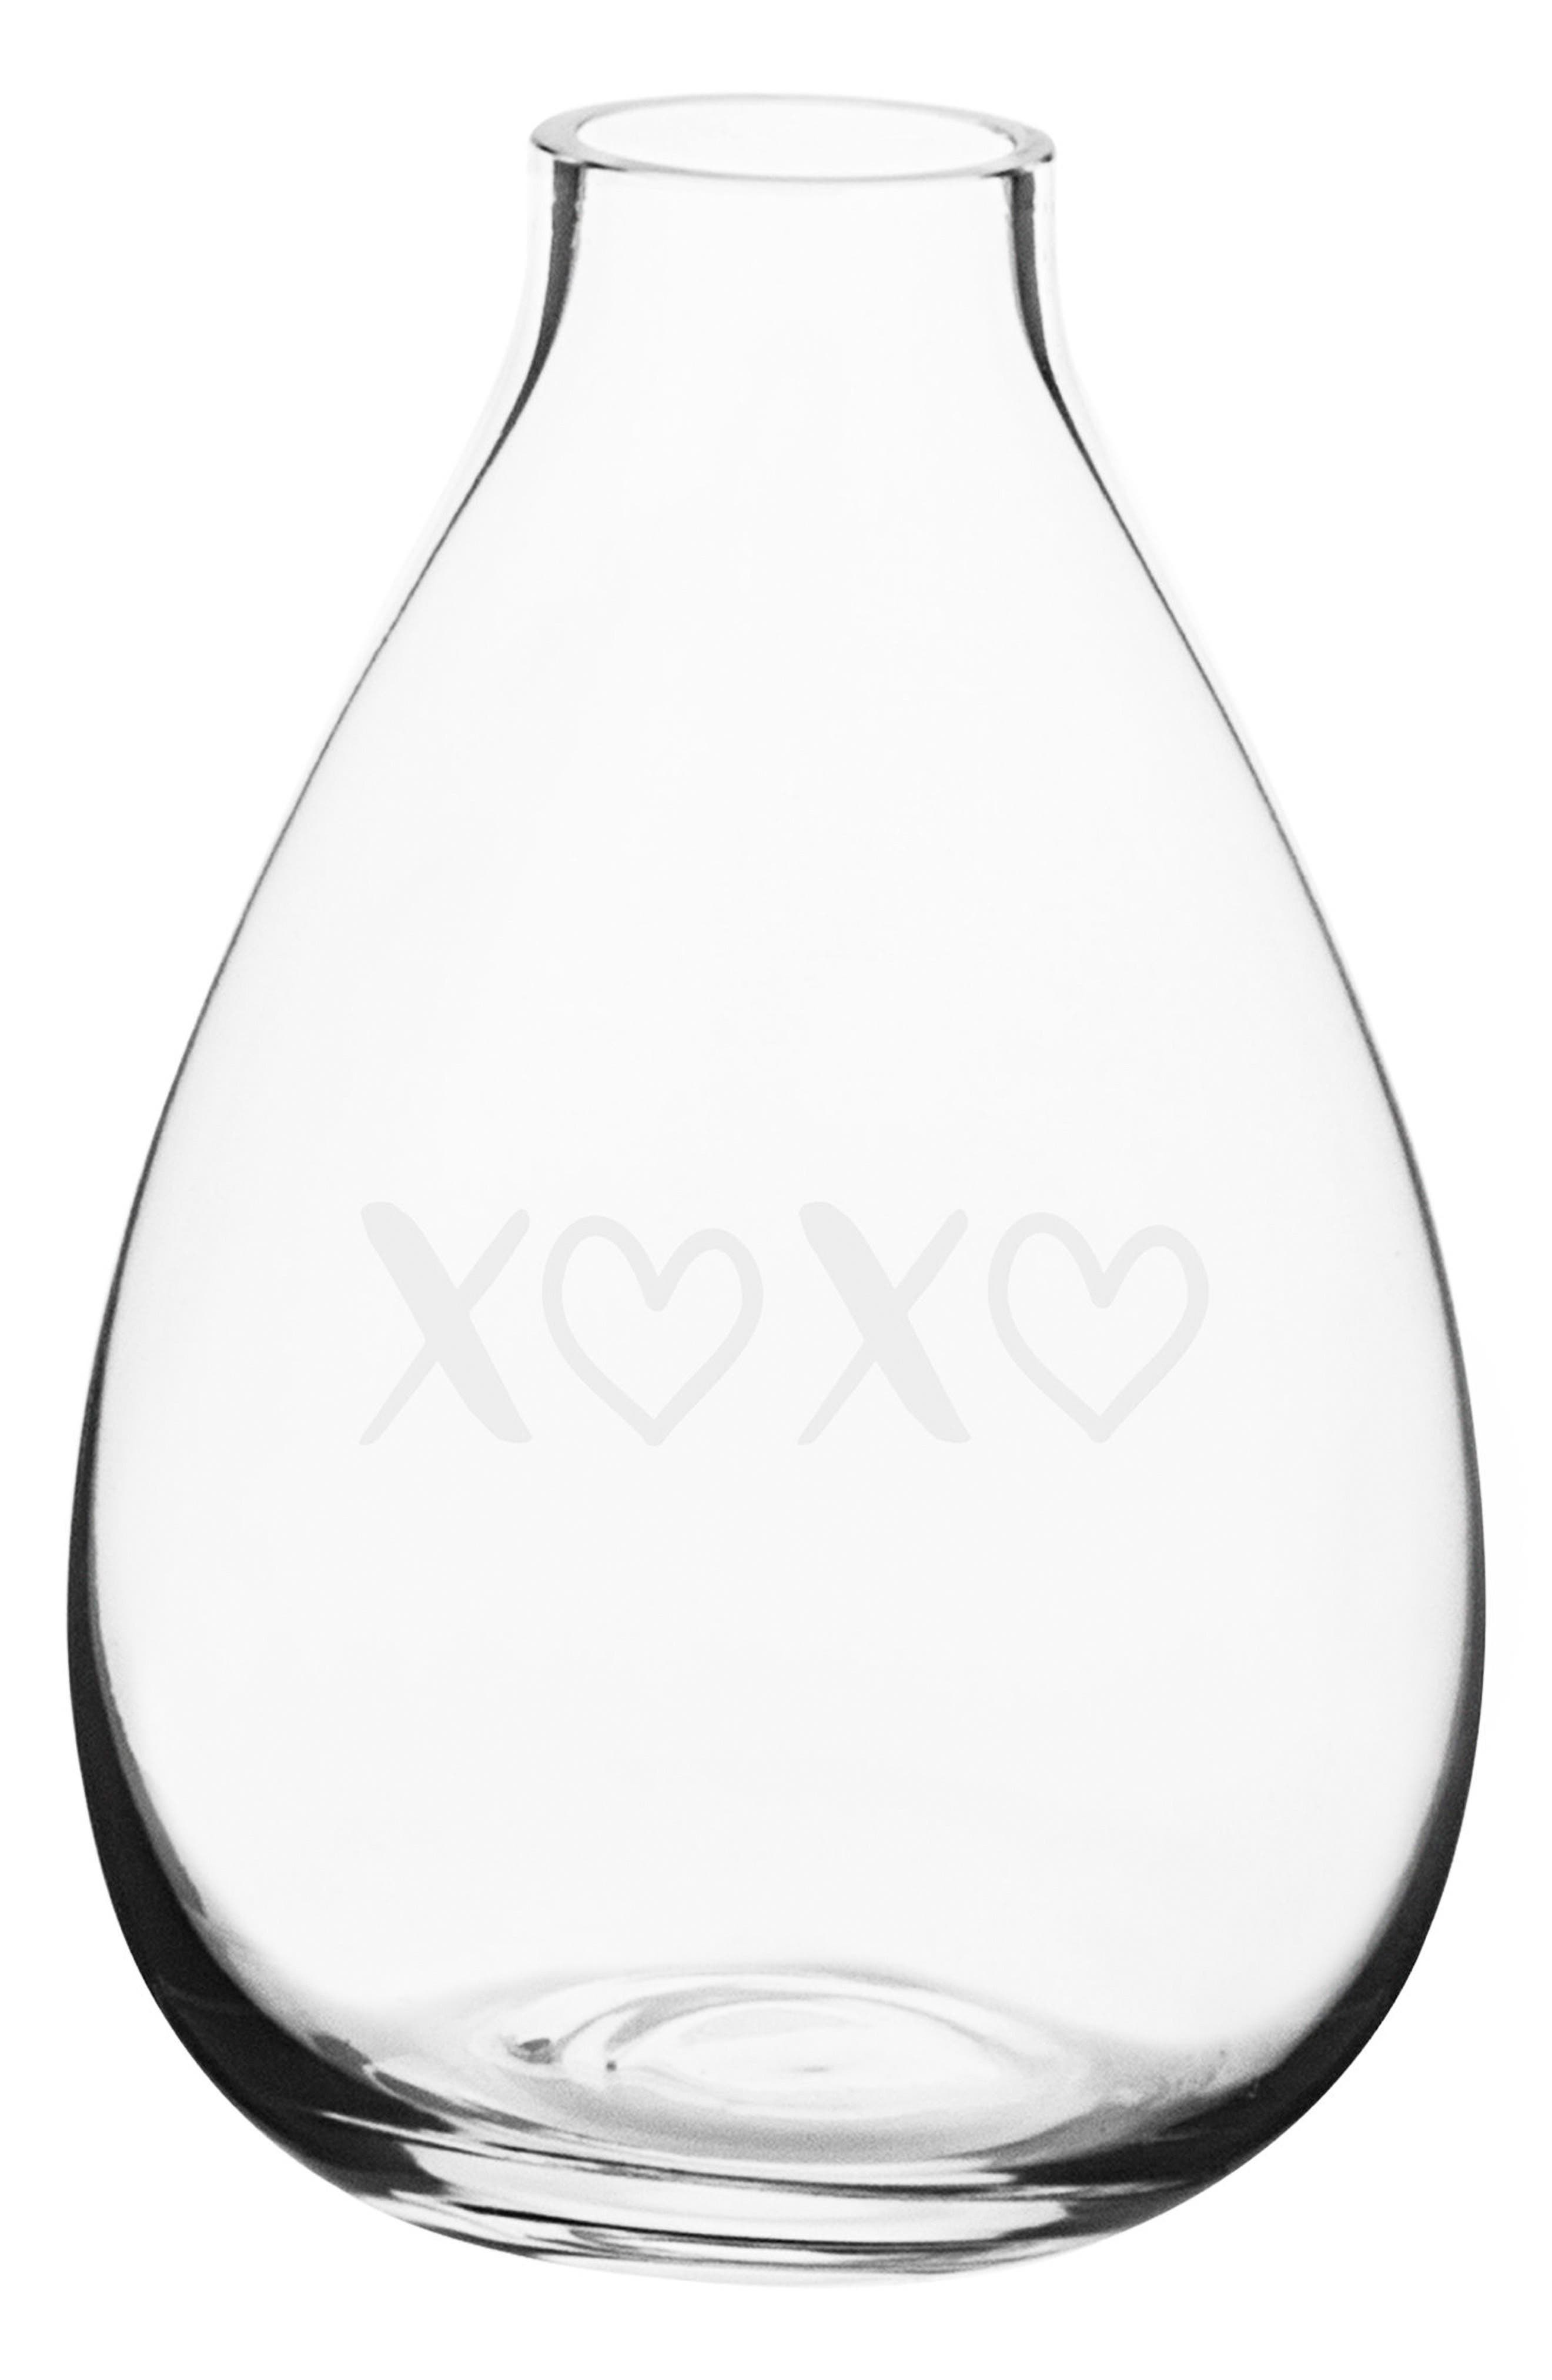 Alternate Image 1 Selected - Cathy's Concepts XOXO Glass Vase